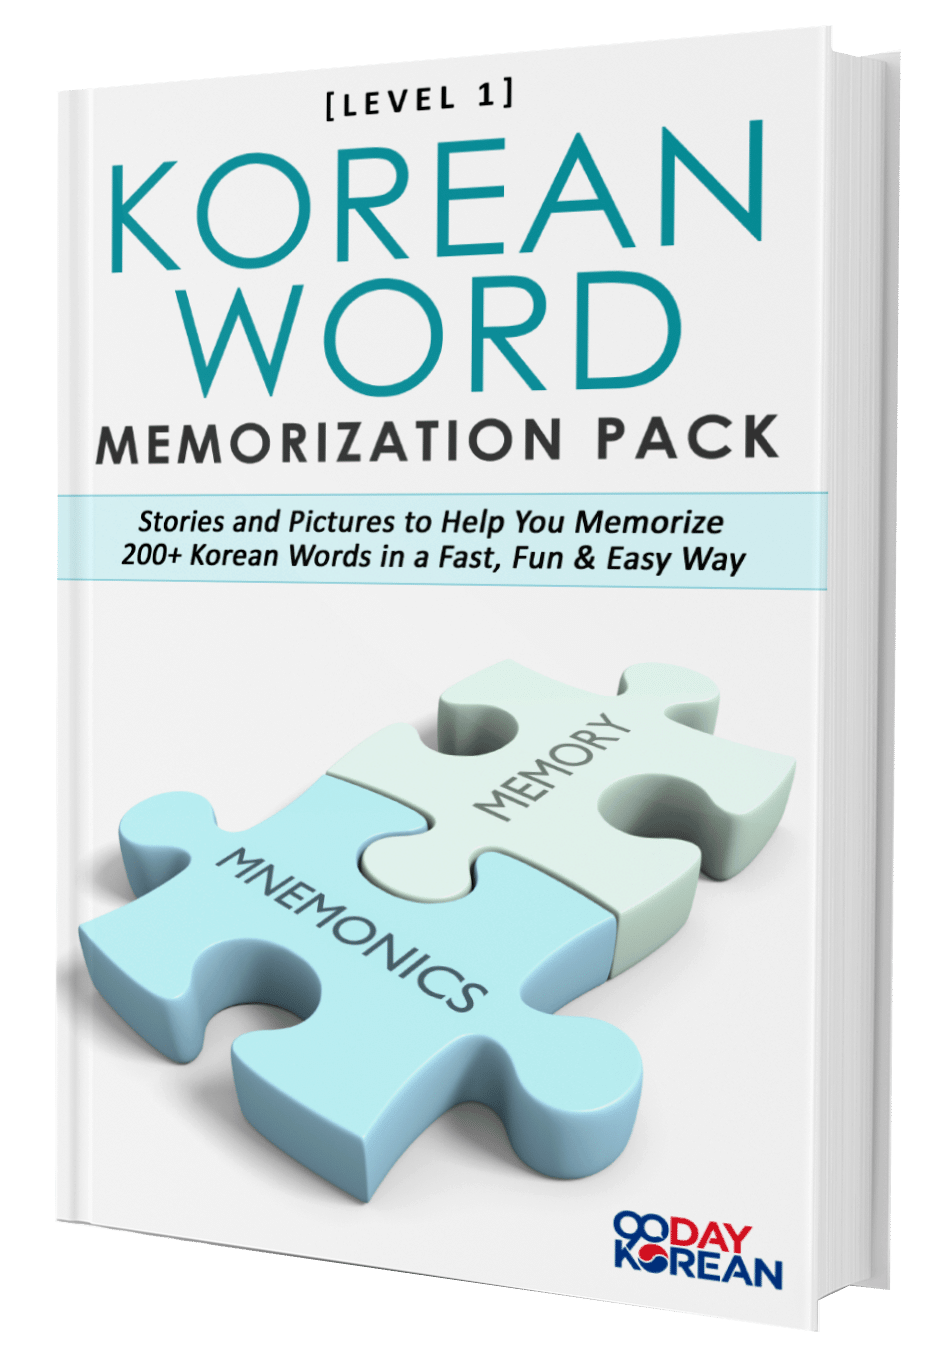 3D image of the Korean Word Memorization Pack by 90 Day Korean